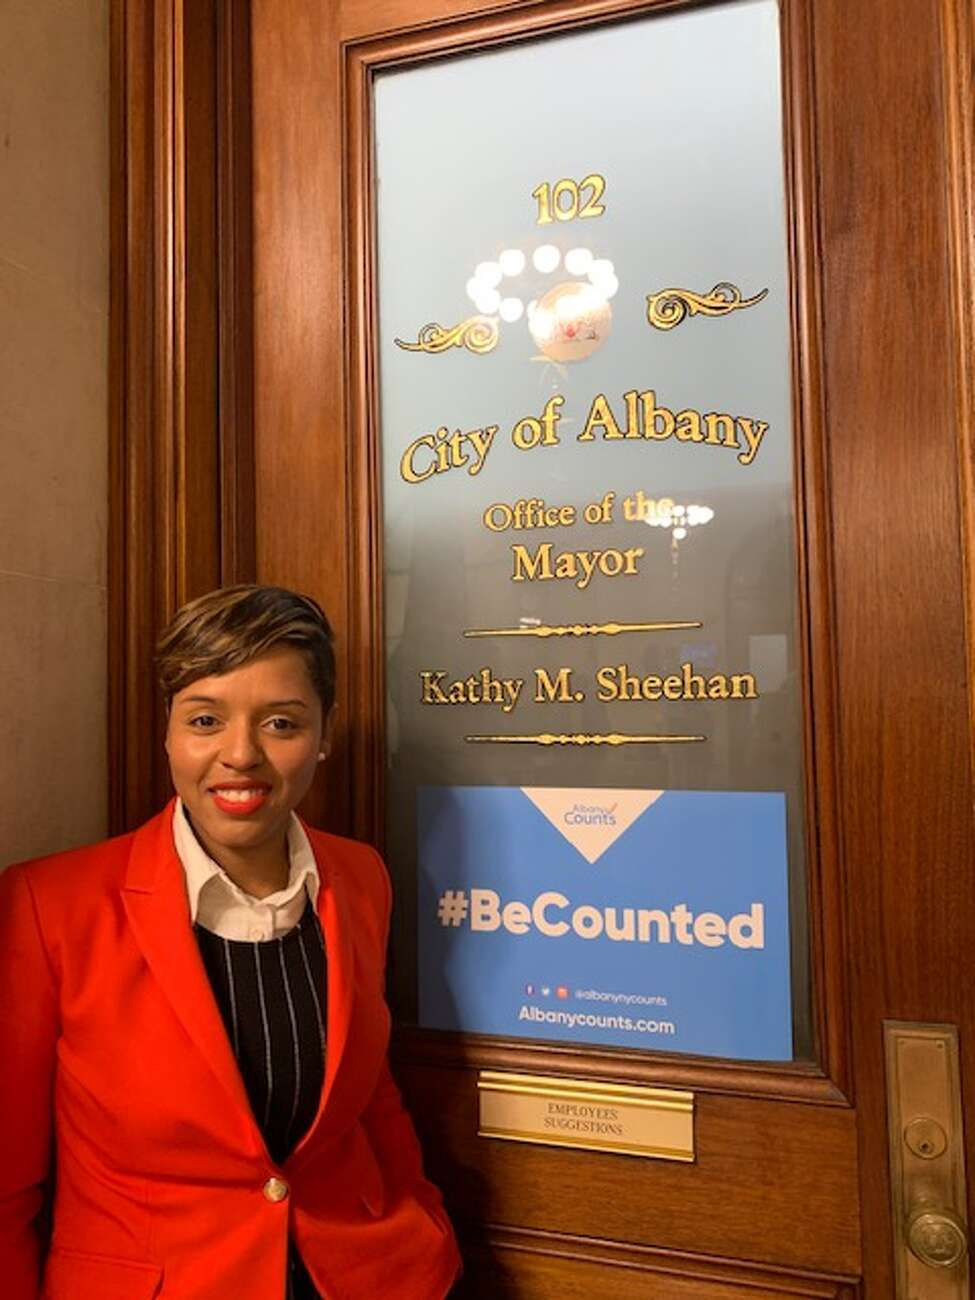 Albany Common Councilwoman Dorcey Applyrs was picked by Mayor Kathy Sheehan to fill the upcoming vacancy for the chief city auditor. She will assume the new role and resign from her post as councilwoman, which she has held since 2014, on Jan. 1, 2020. (Amanda Fries / Times Union)